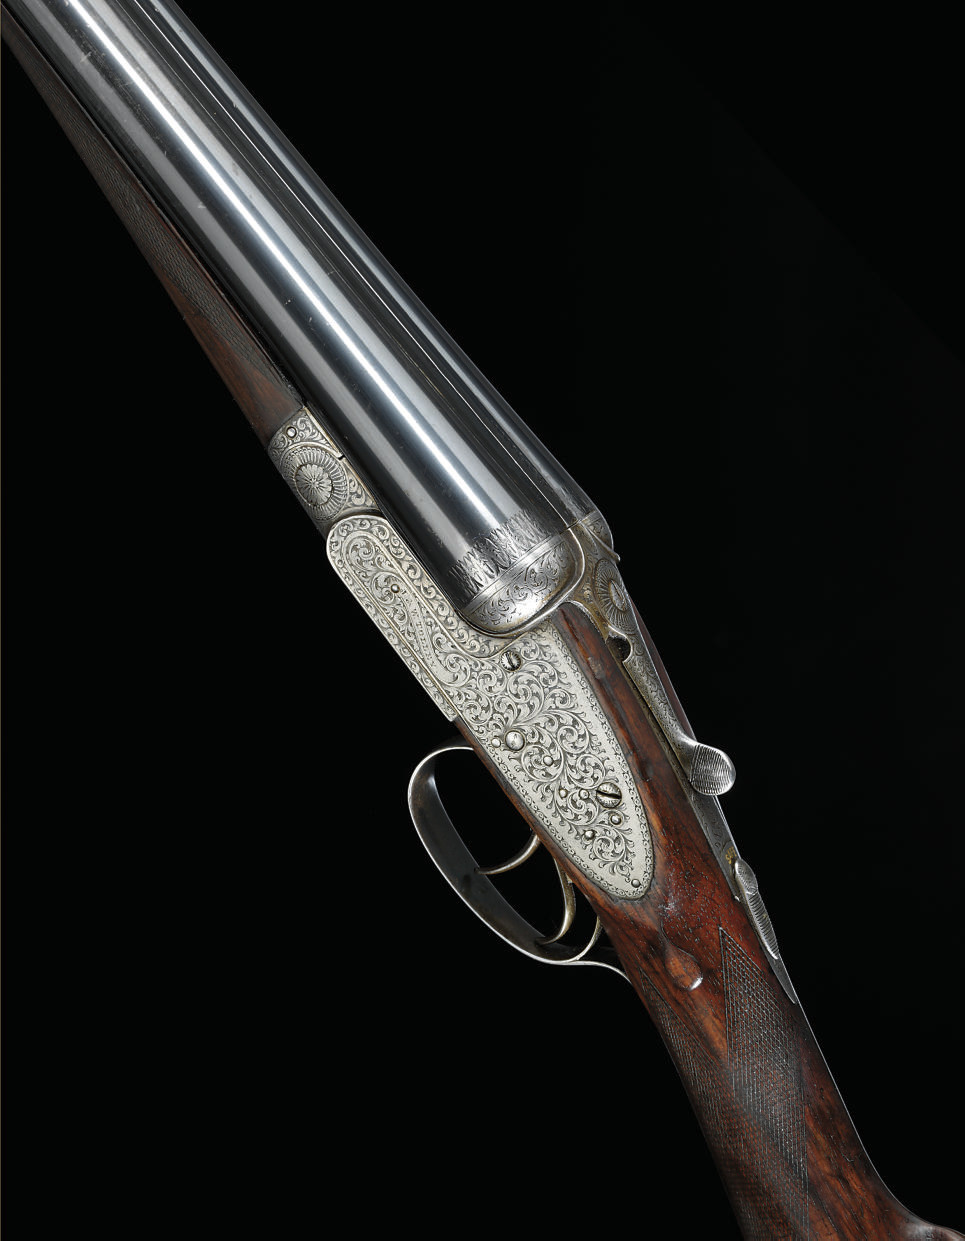 A 12-BORE SIDELOCK EJECTOR GUN BY J. & W. TOLLEY, NO. 9473